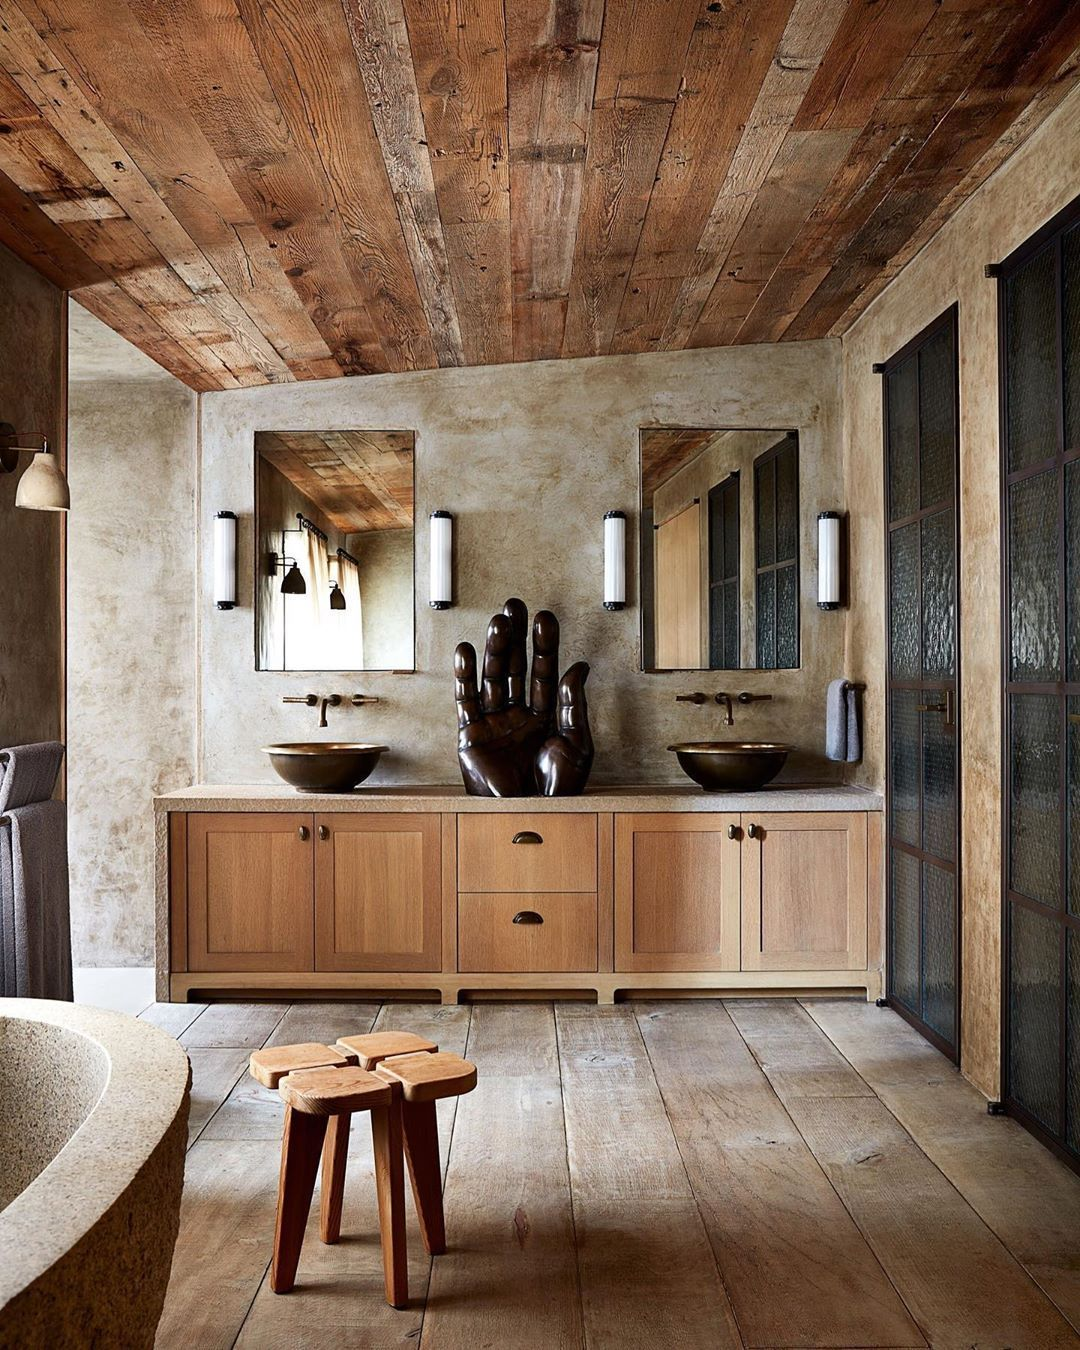 1960s Home Remodel Disc Interiors On Instagram Nyc Master Bathroom In Architectural Digest By Ryan Murphy And In 2020 Disc Interiors Home Remodeling Cheap Home Decor